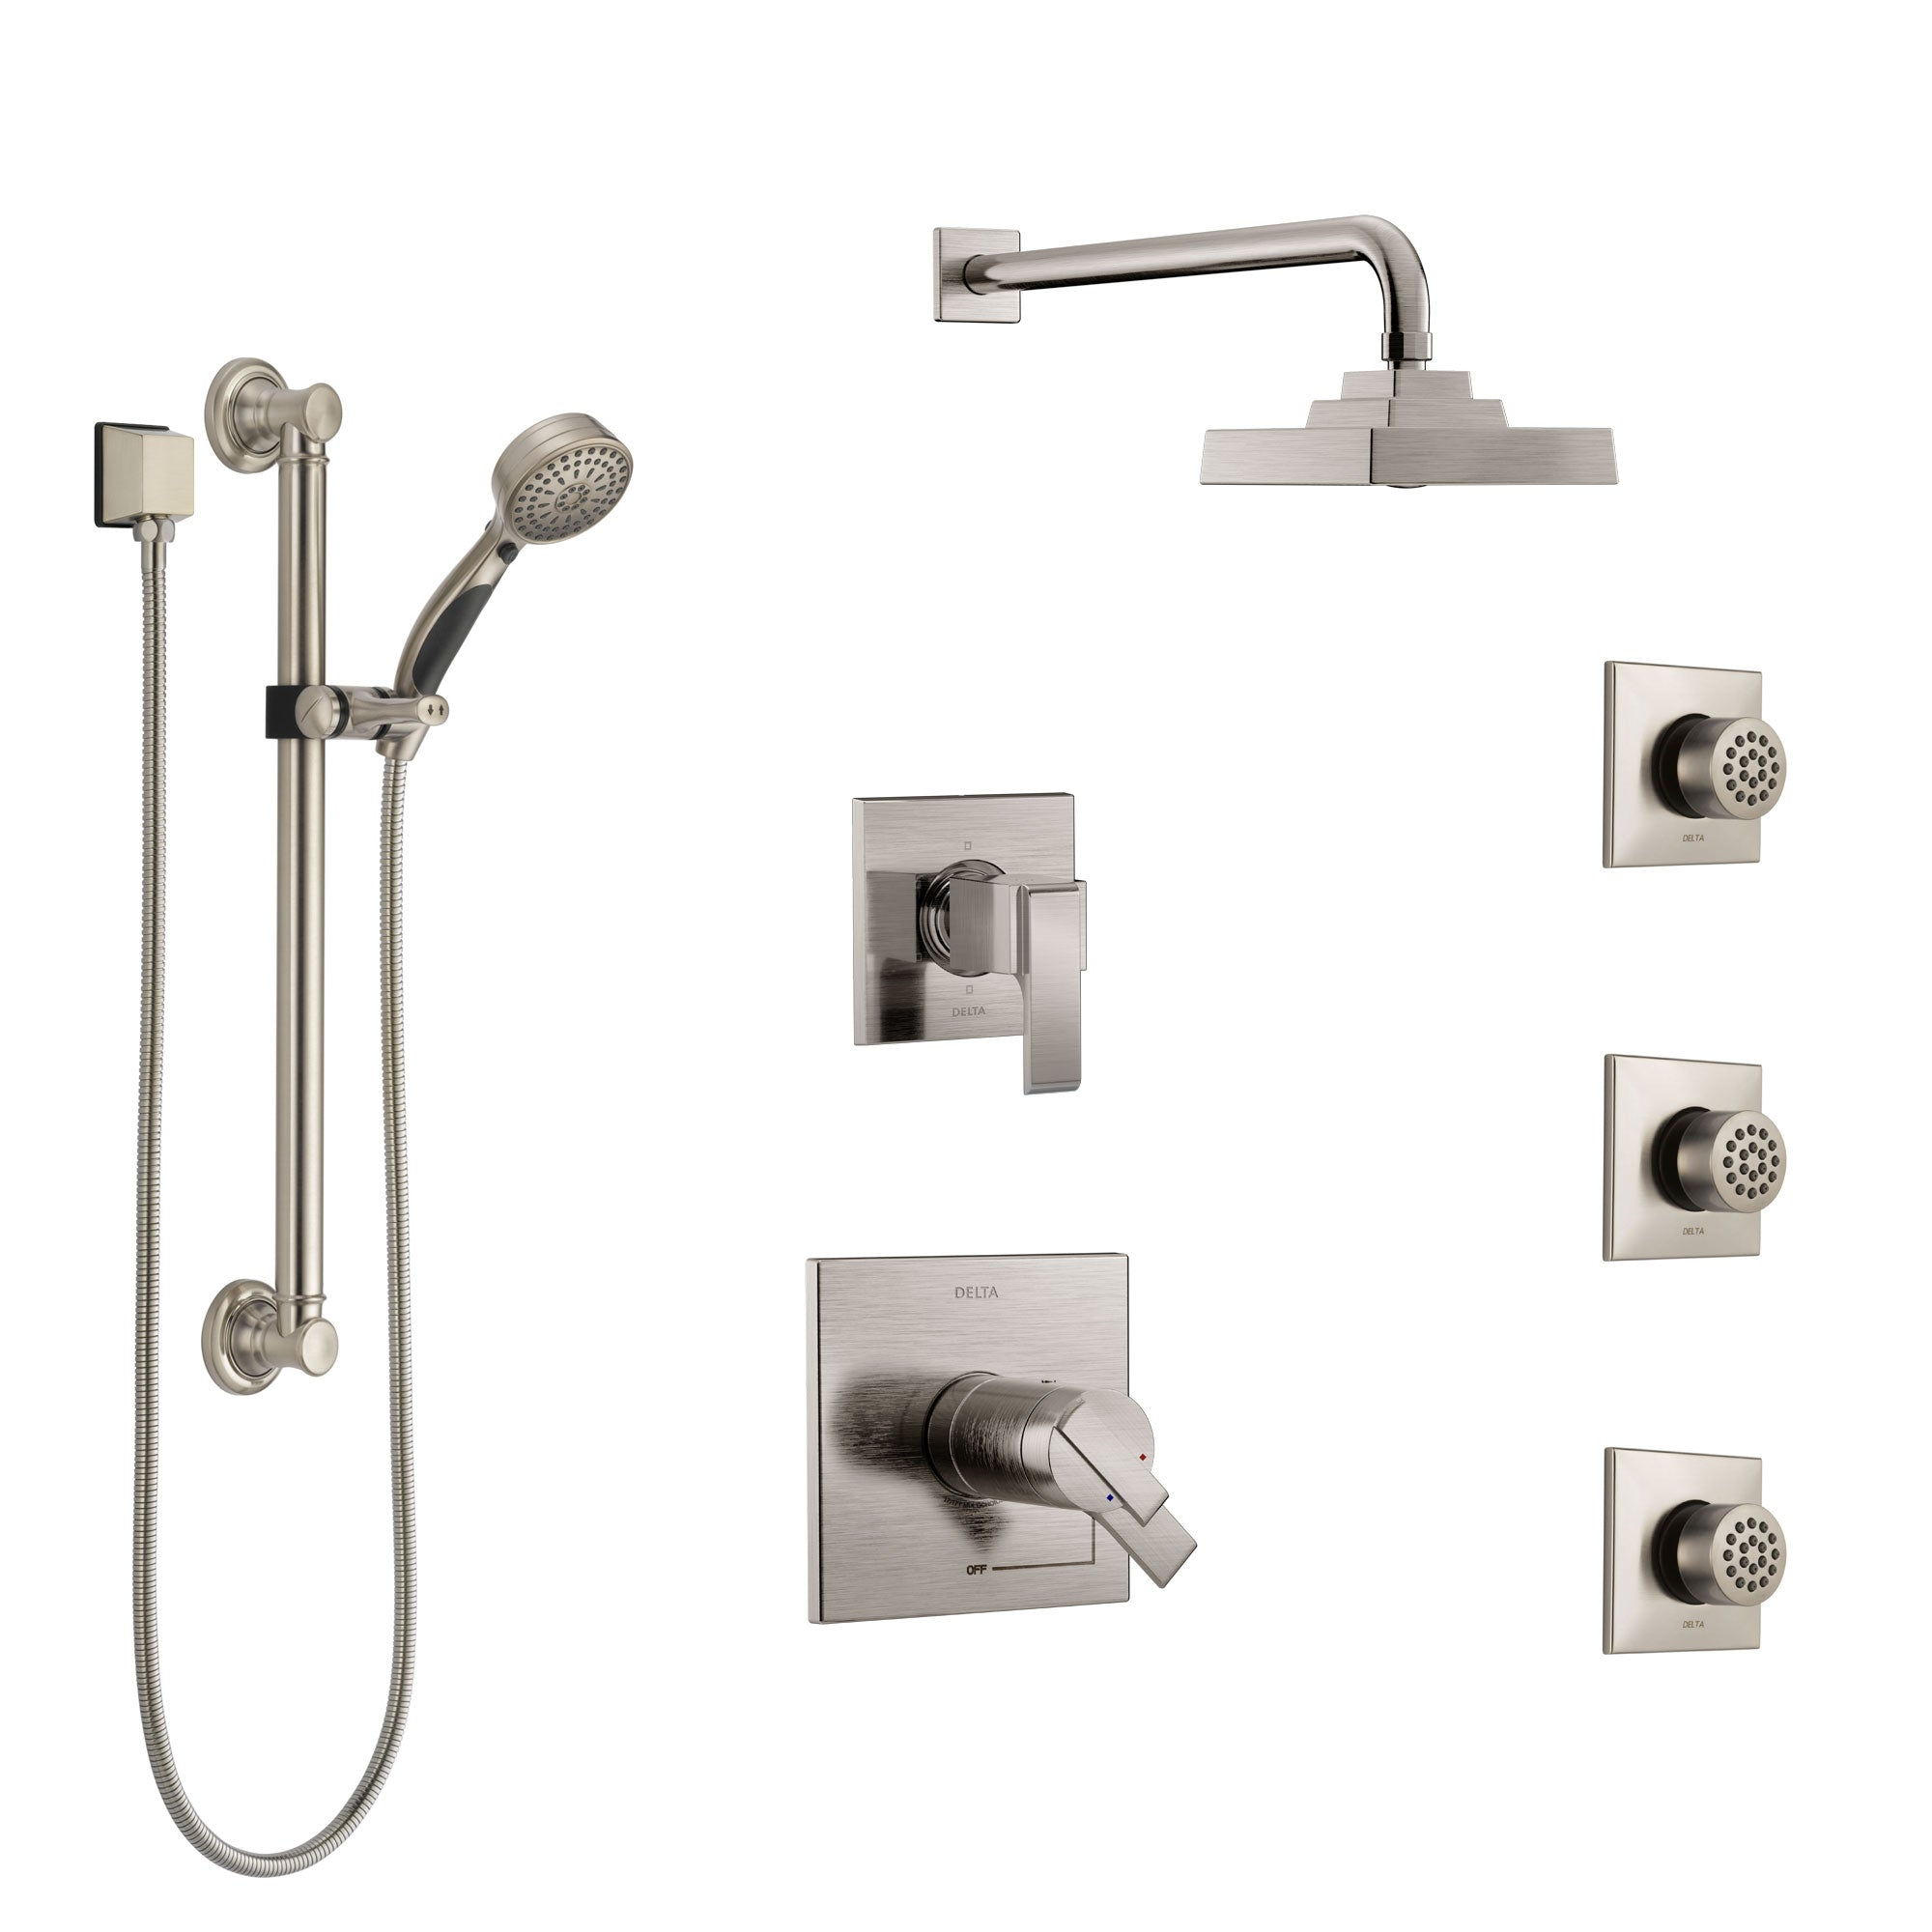 Delta Ara Dual Thermostatic Control Stainless Steel Finish Shower System, Diverter, Showerhead, 3 Body Sprays, and Grab Bar Hand Shower SS17T2671SS1